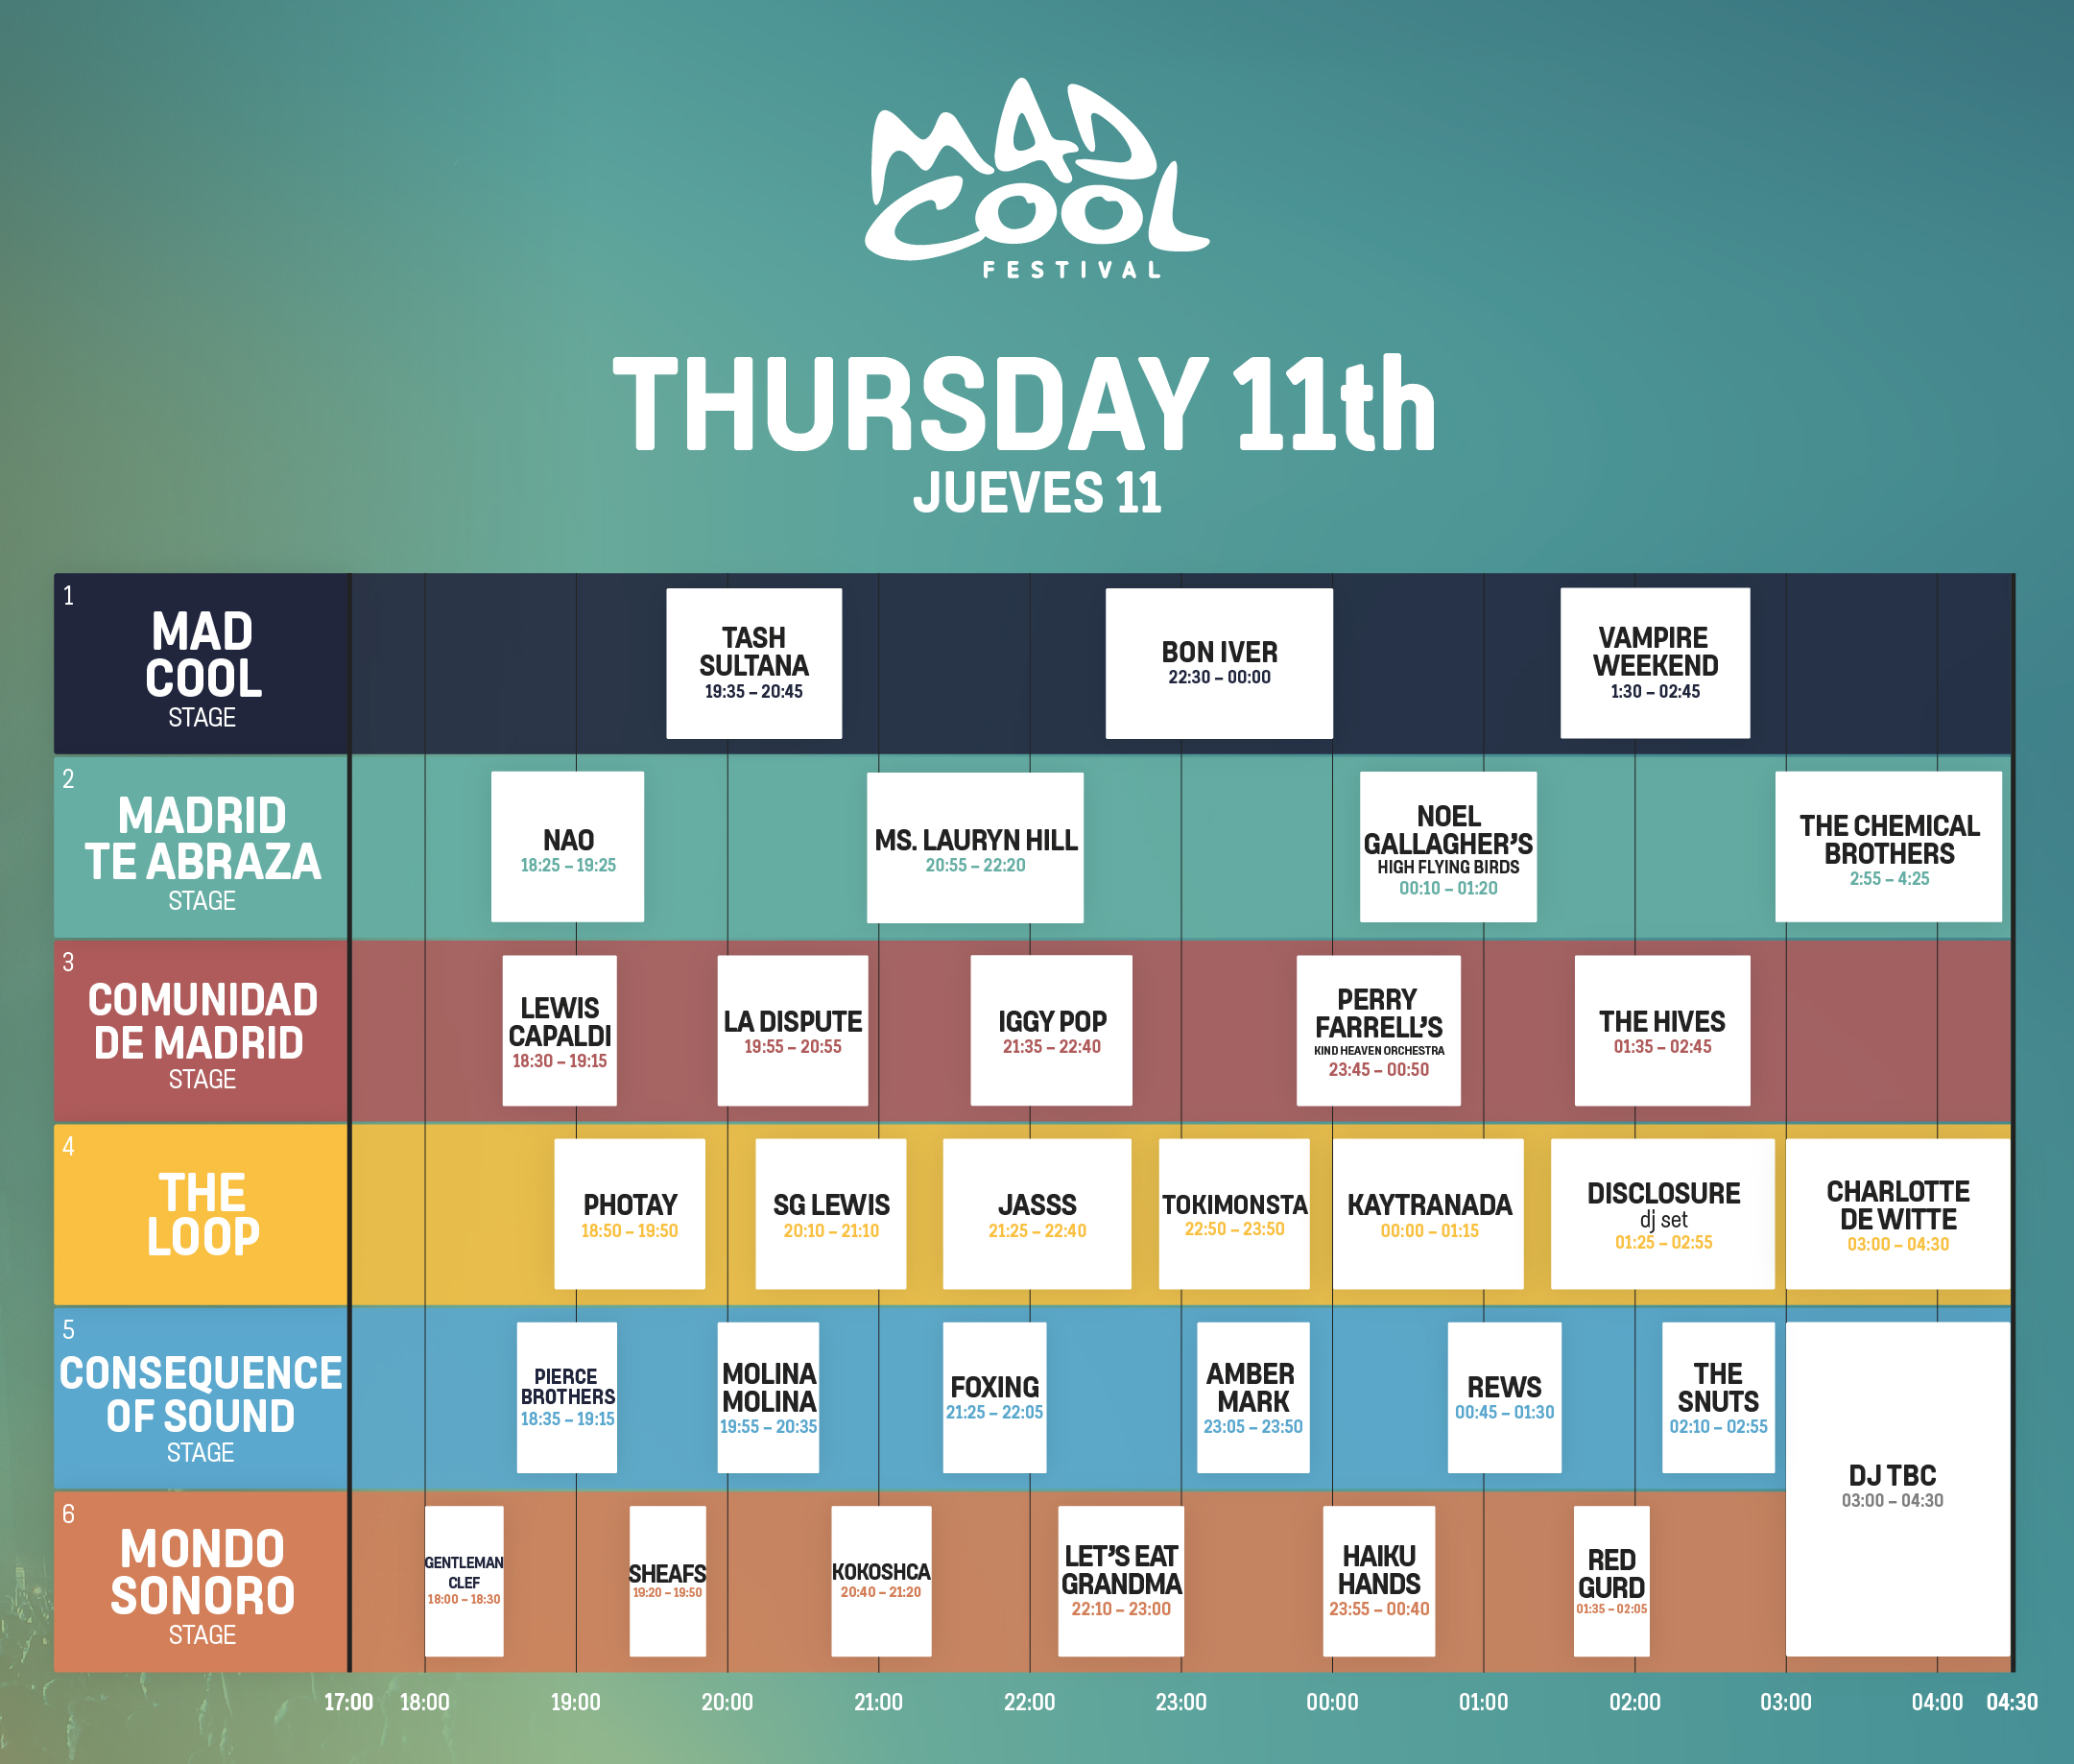 mad cool stage lineup 2019 thursday